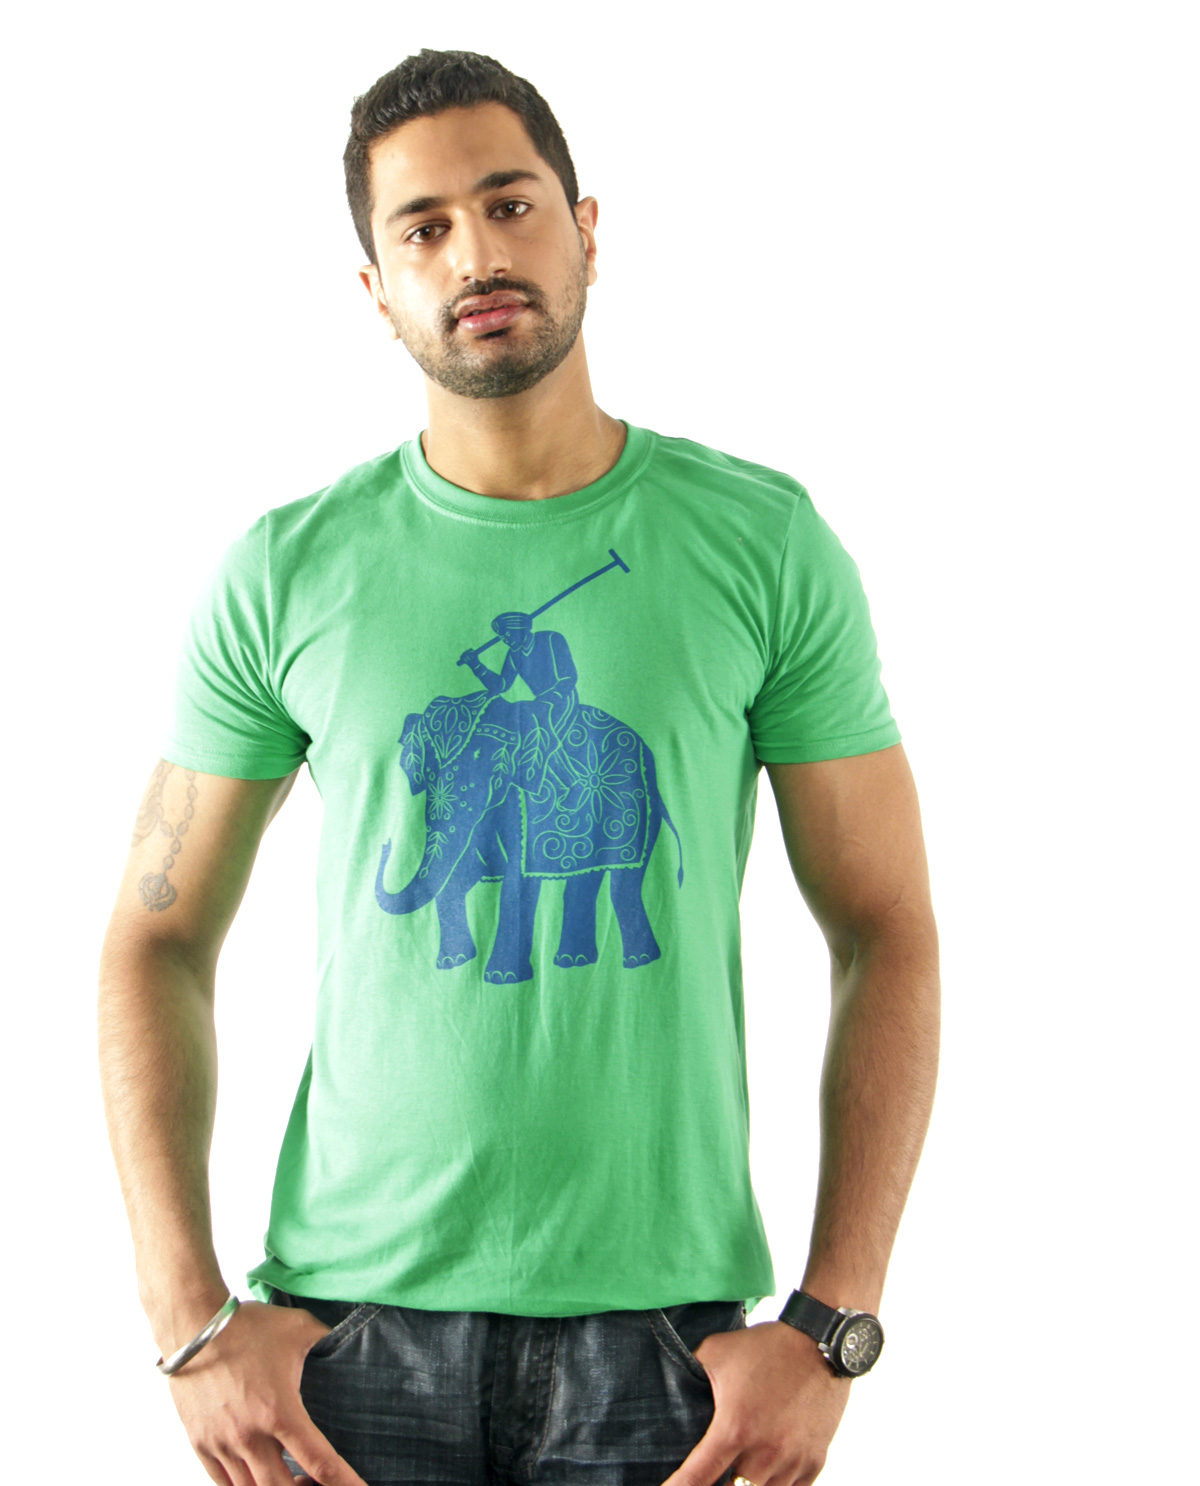 Elephant Polo graphic design short sleeved shirt being worn by South Asian male modeal. Graphic design t.shirts by Brown Man Clothing Co.